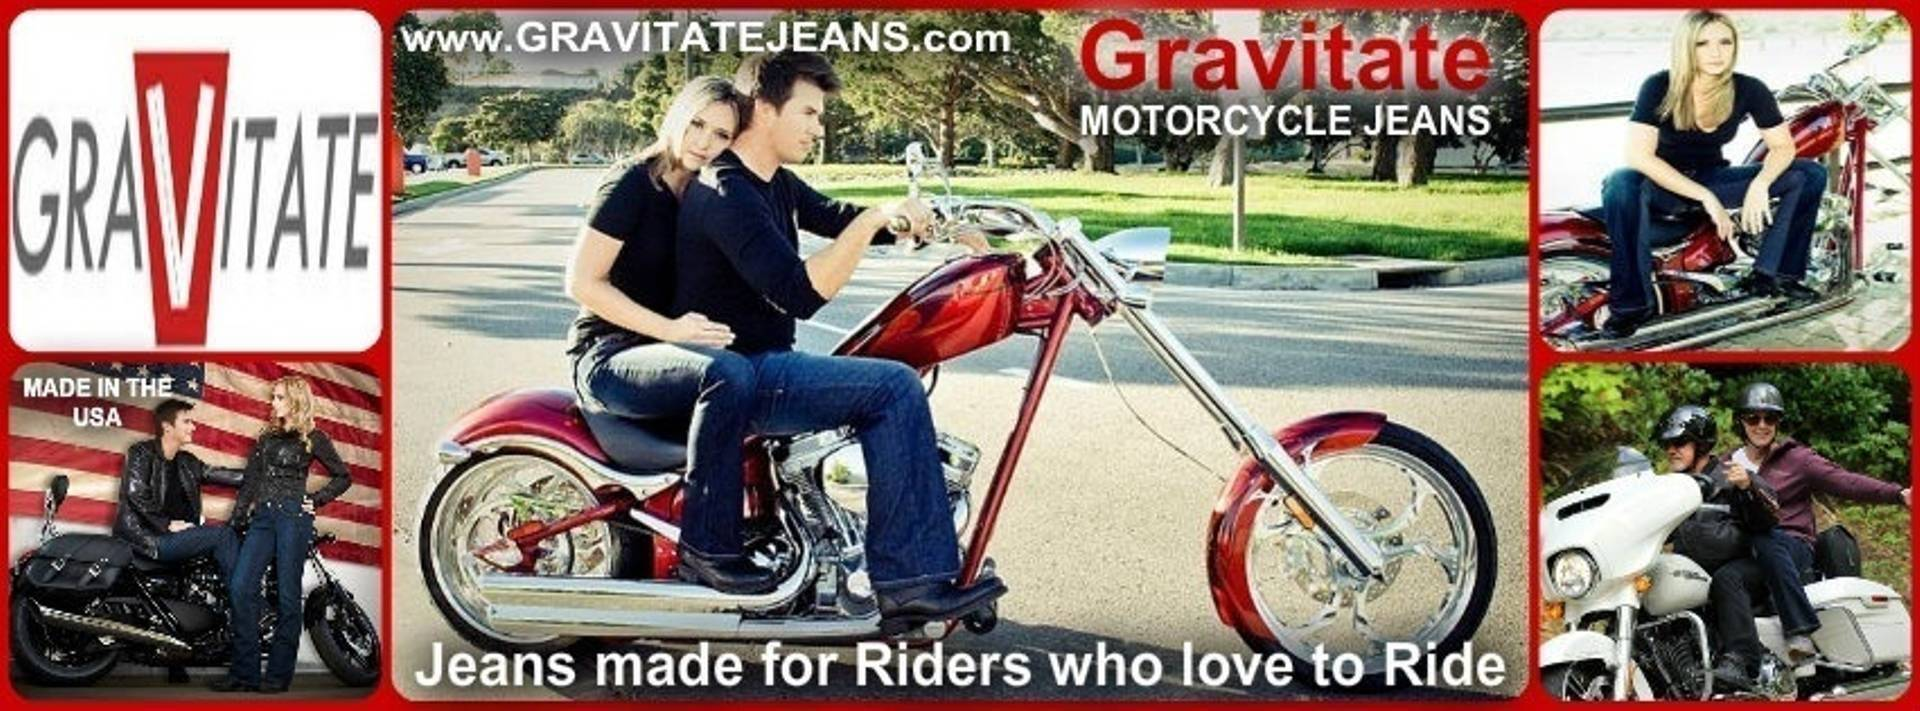 Gravity Jeans Motorcycle rider jeans